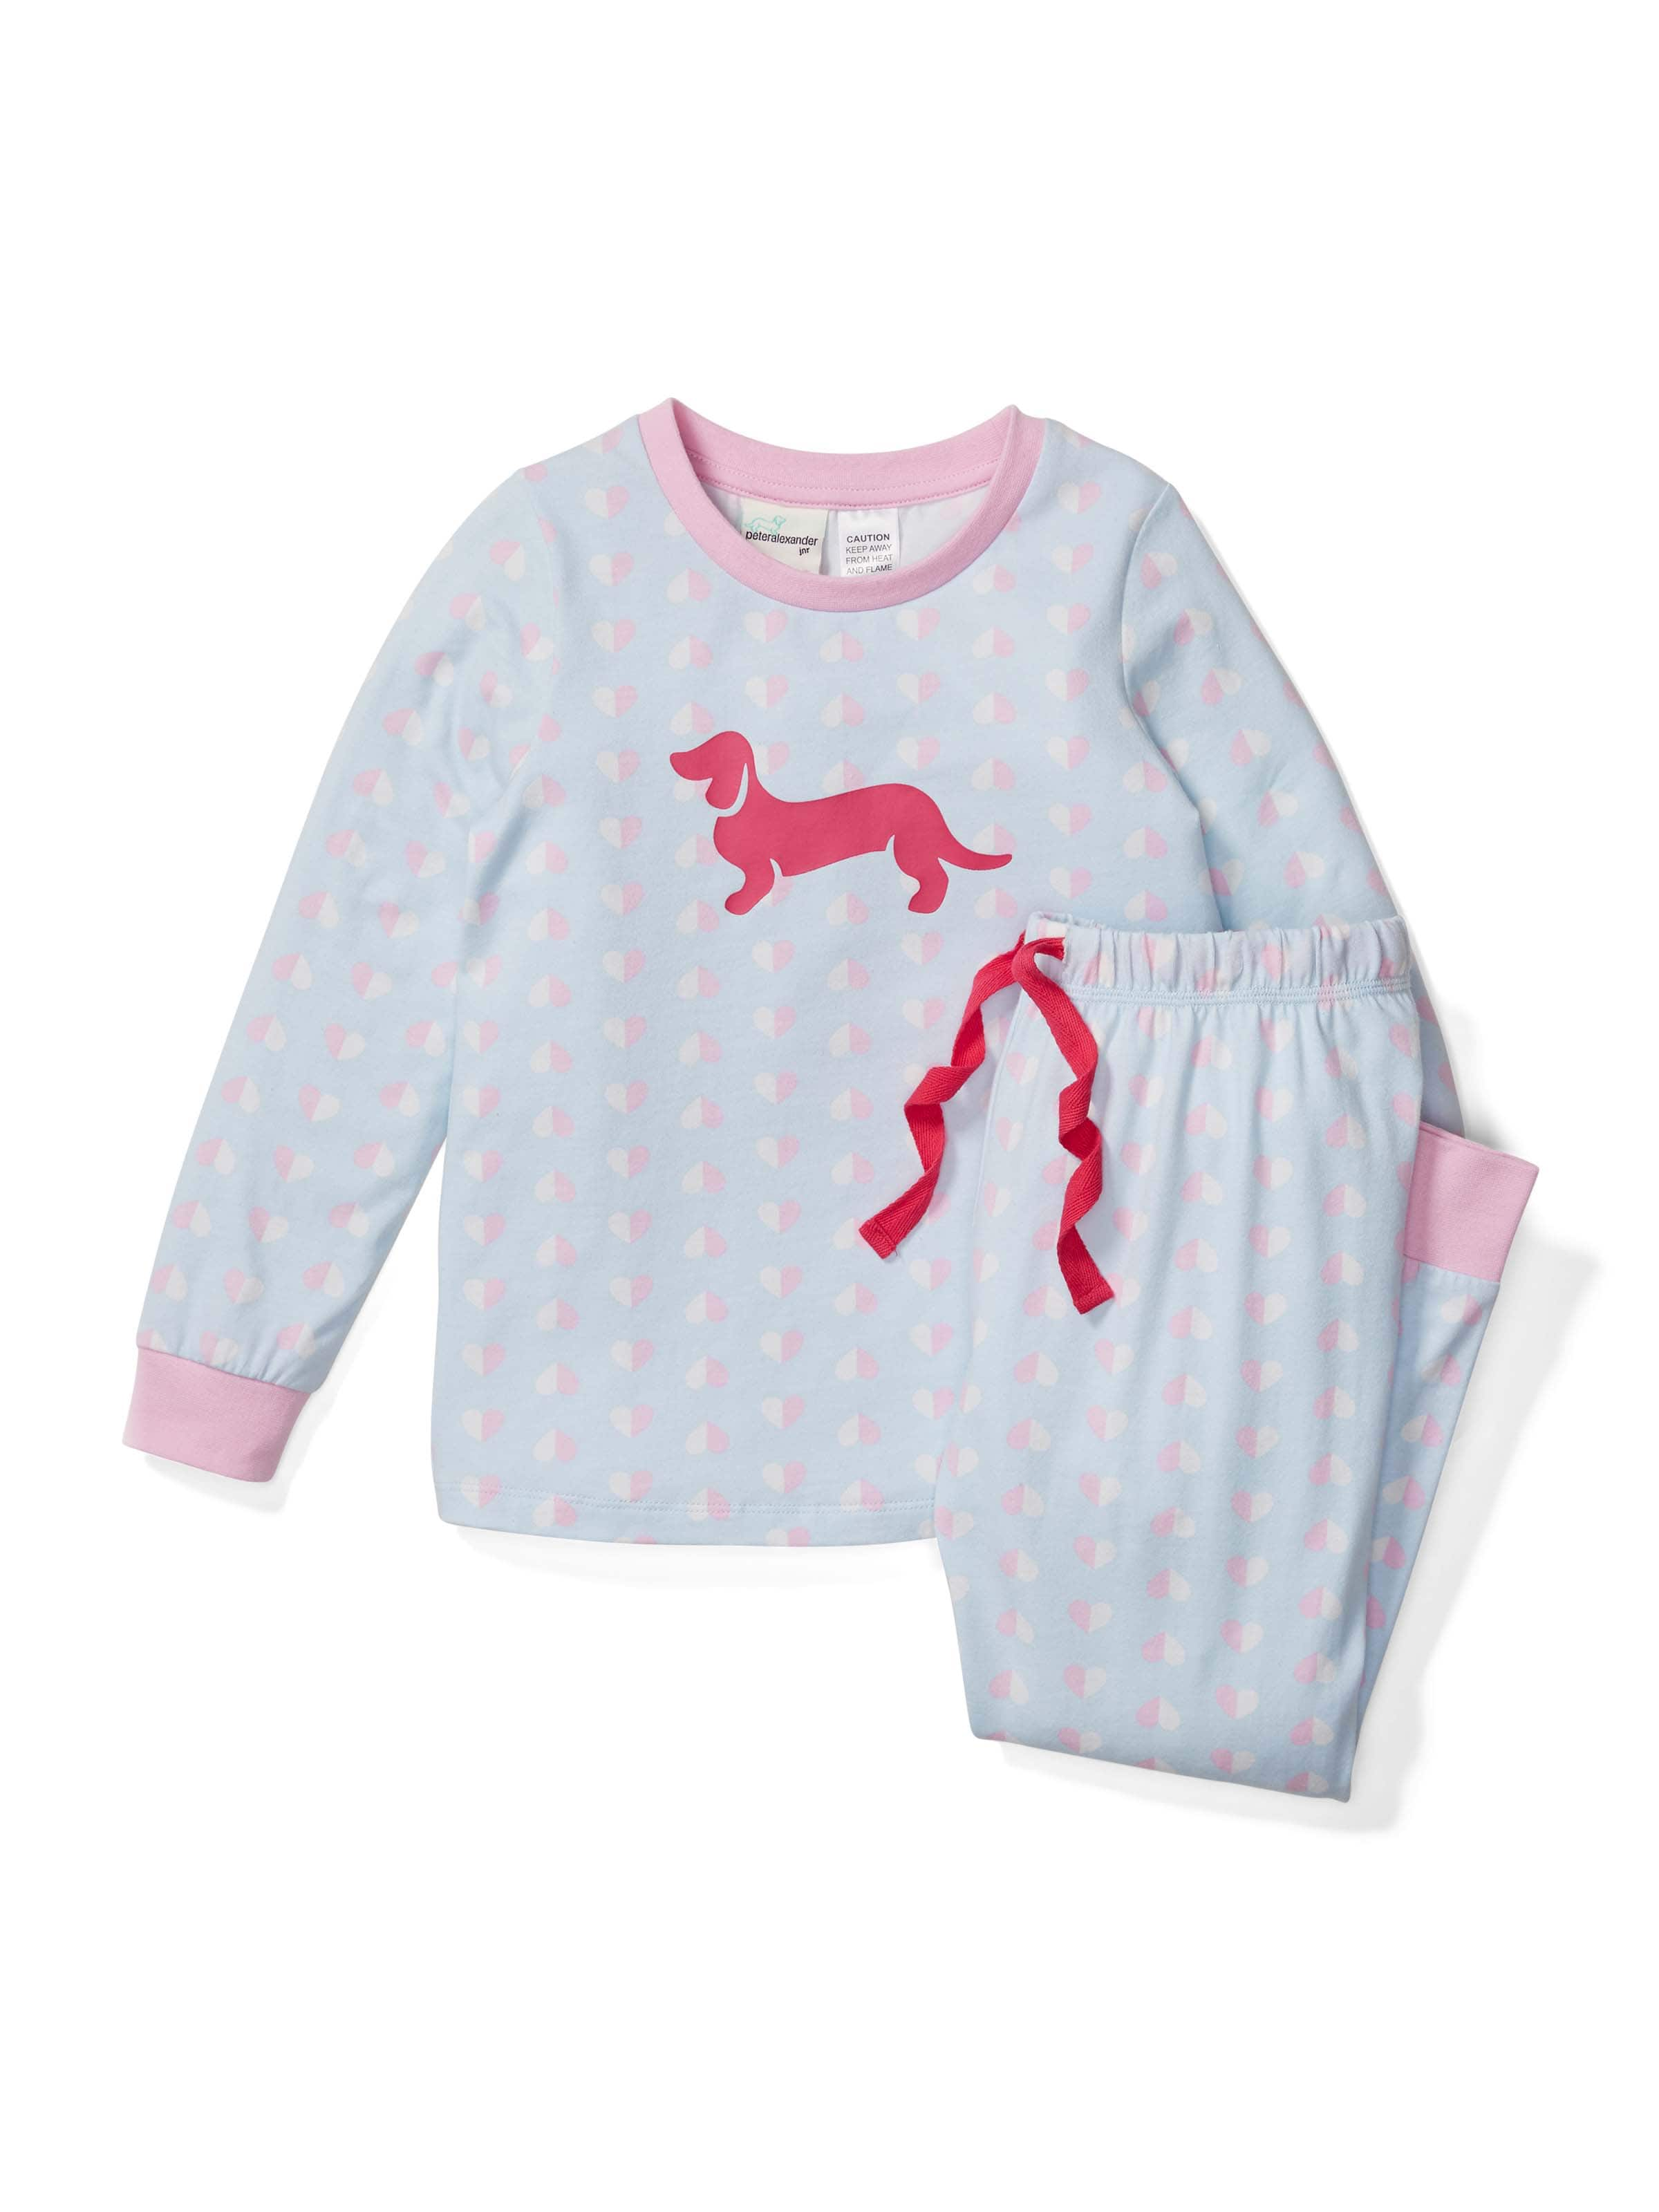 Girls Pastel Heart Pj Set